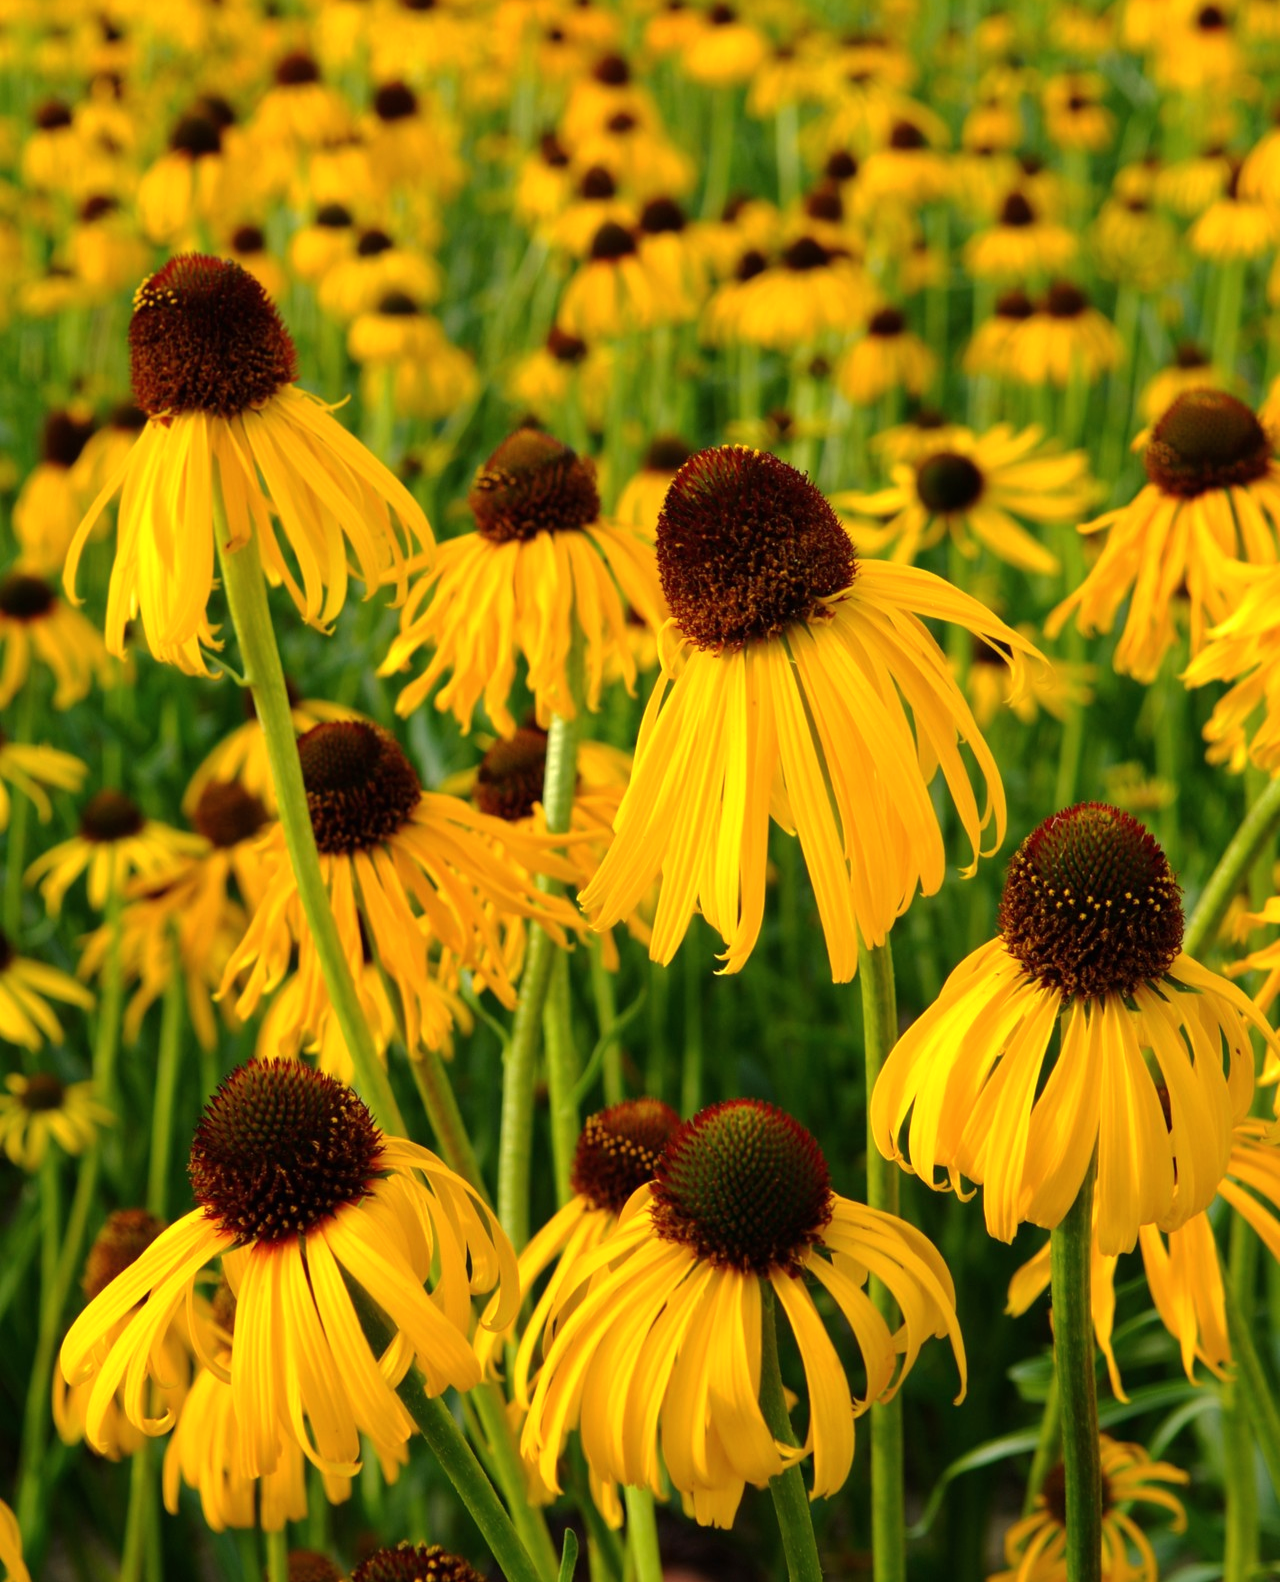 We All Love Purple Coneflowers Echinacea Purpurea But Have You Grown Perennial Yellow Coneflowers No Not R Echinacea Echinacea Purpurea Flowers Perennials